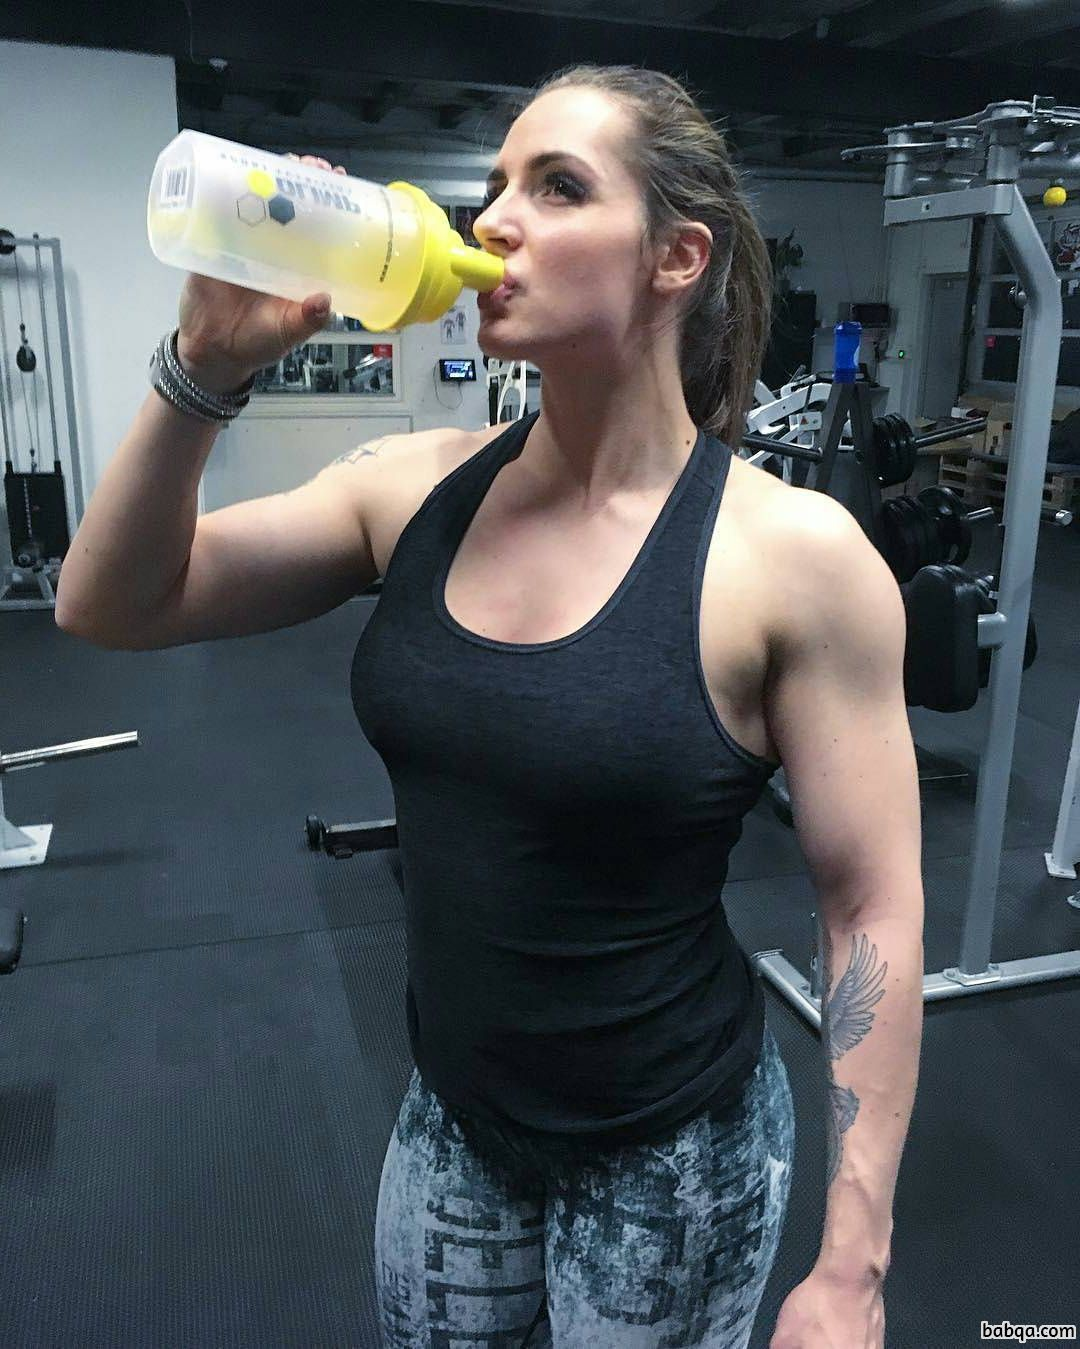 cute female bodybuilder with muscular body and muscle